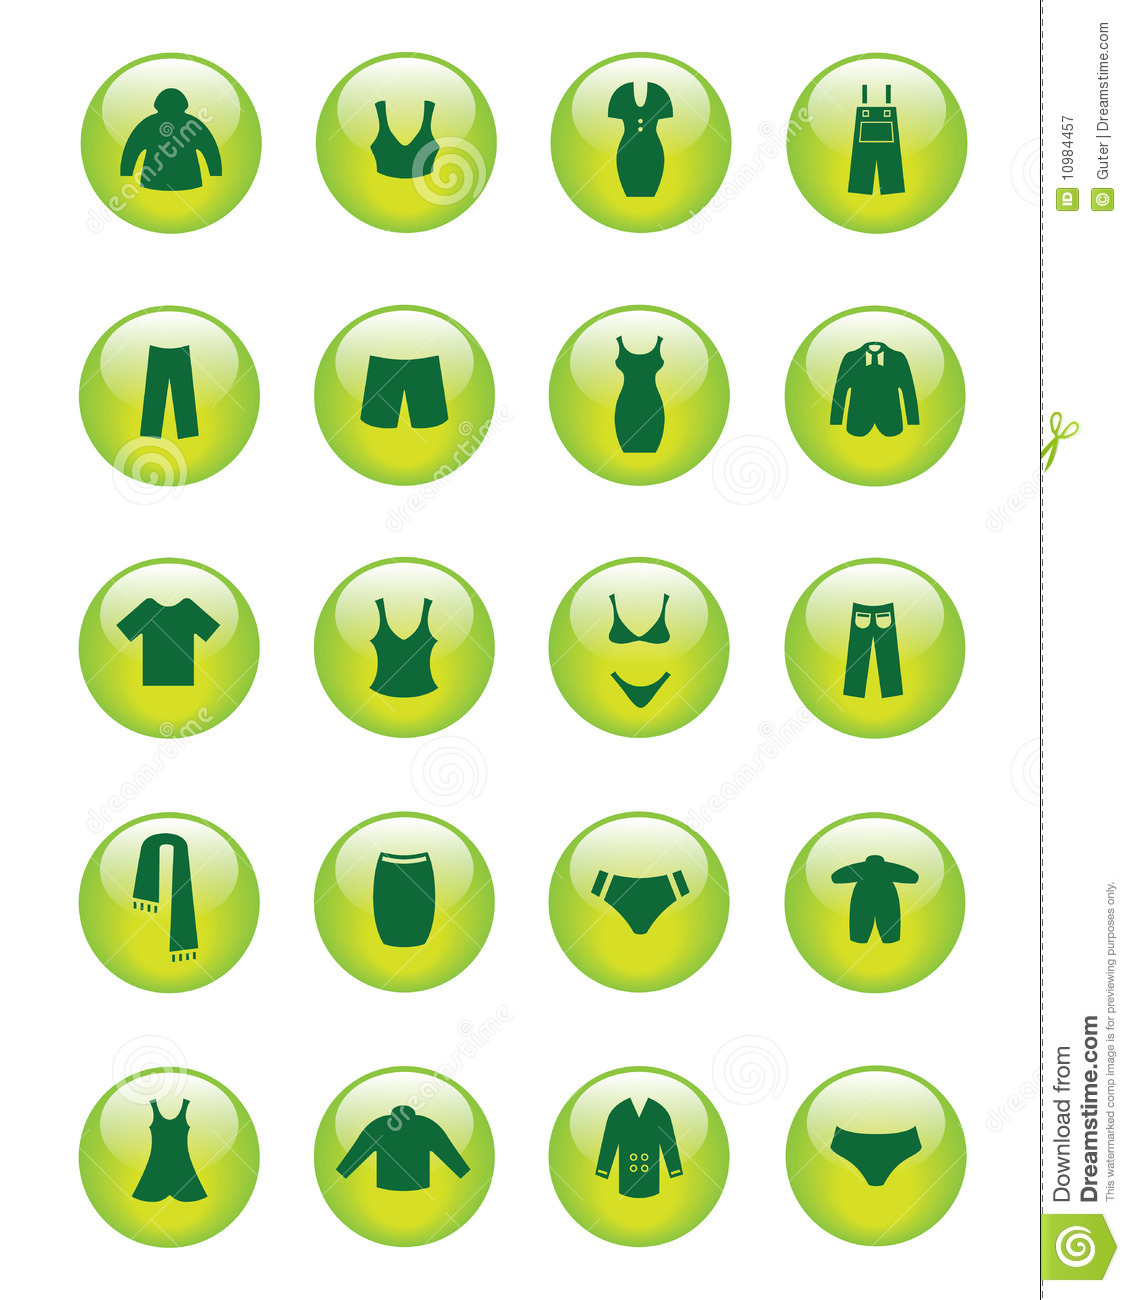 Clothing Icons Vector Royalty Free Stock Photography Image 10984457